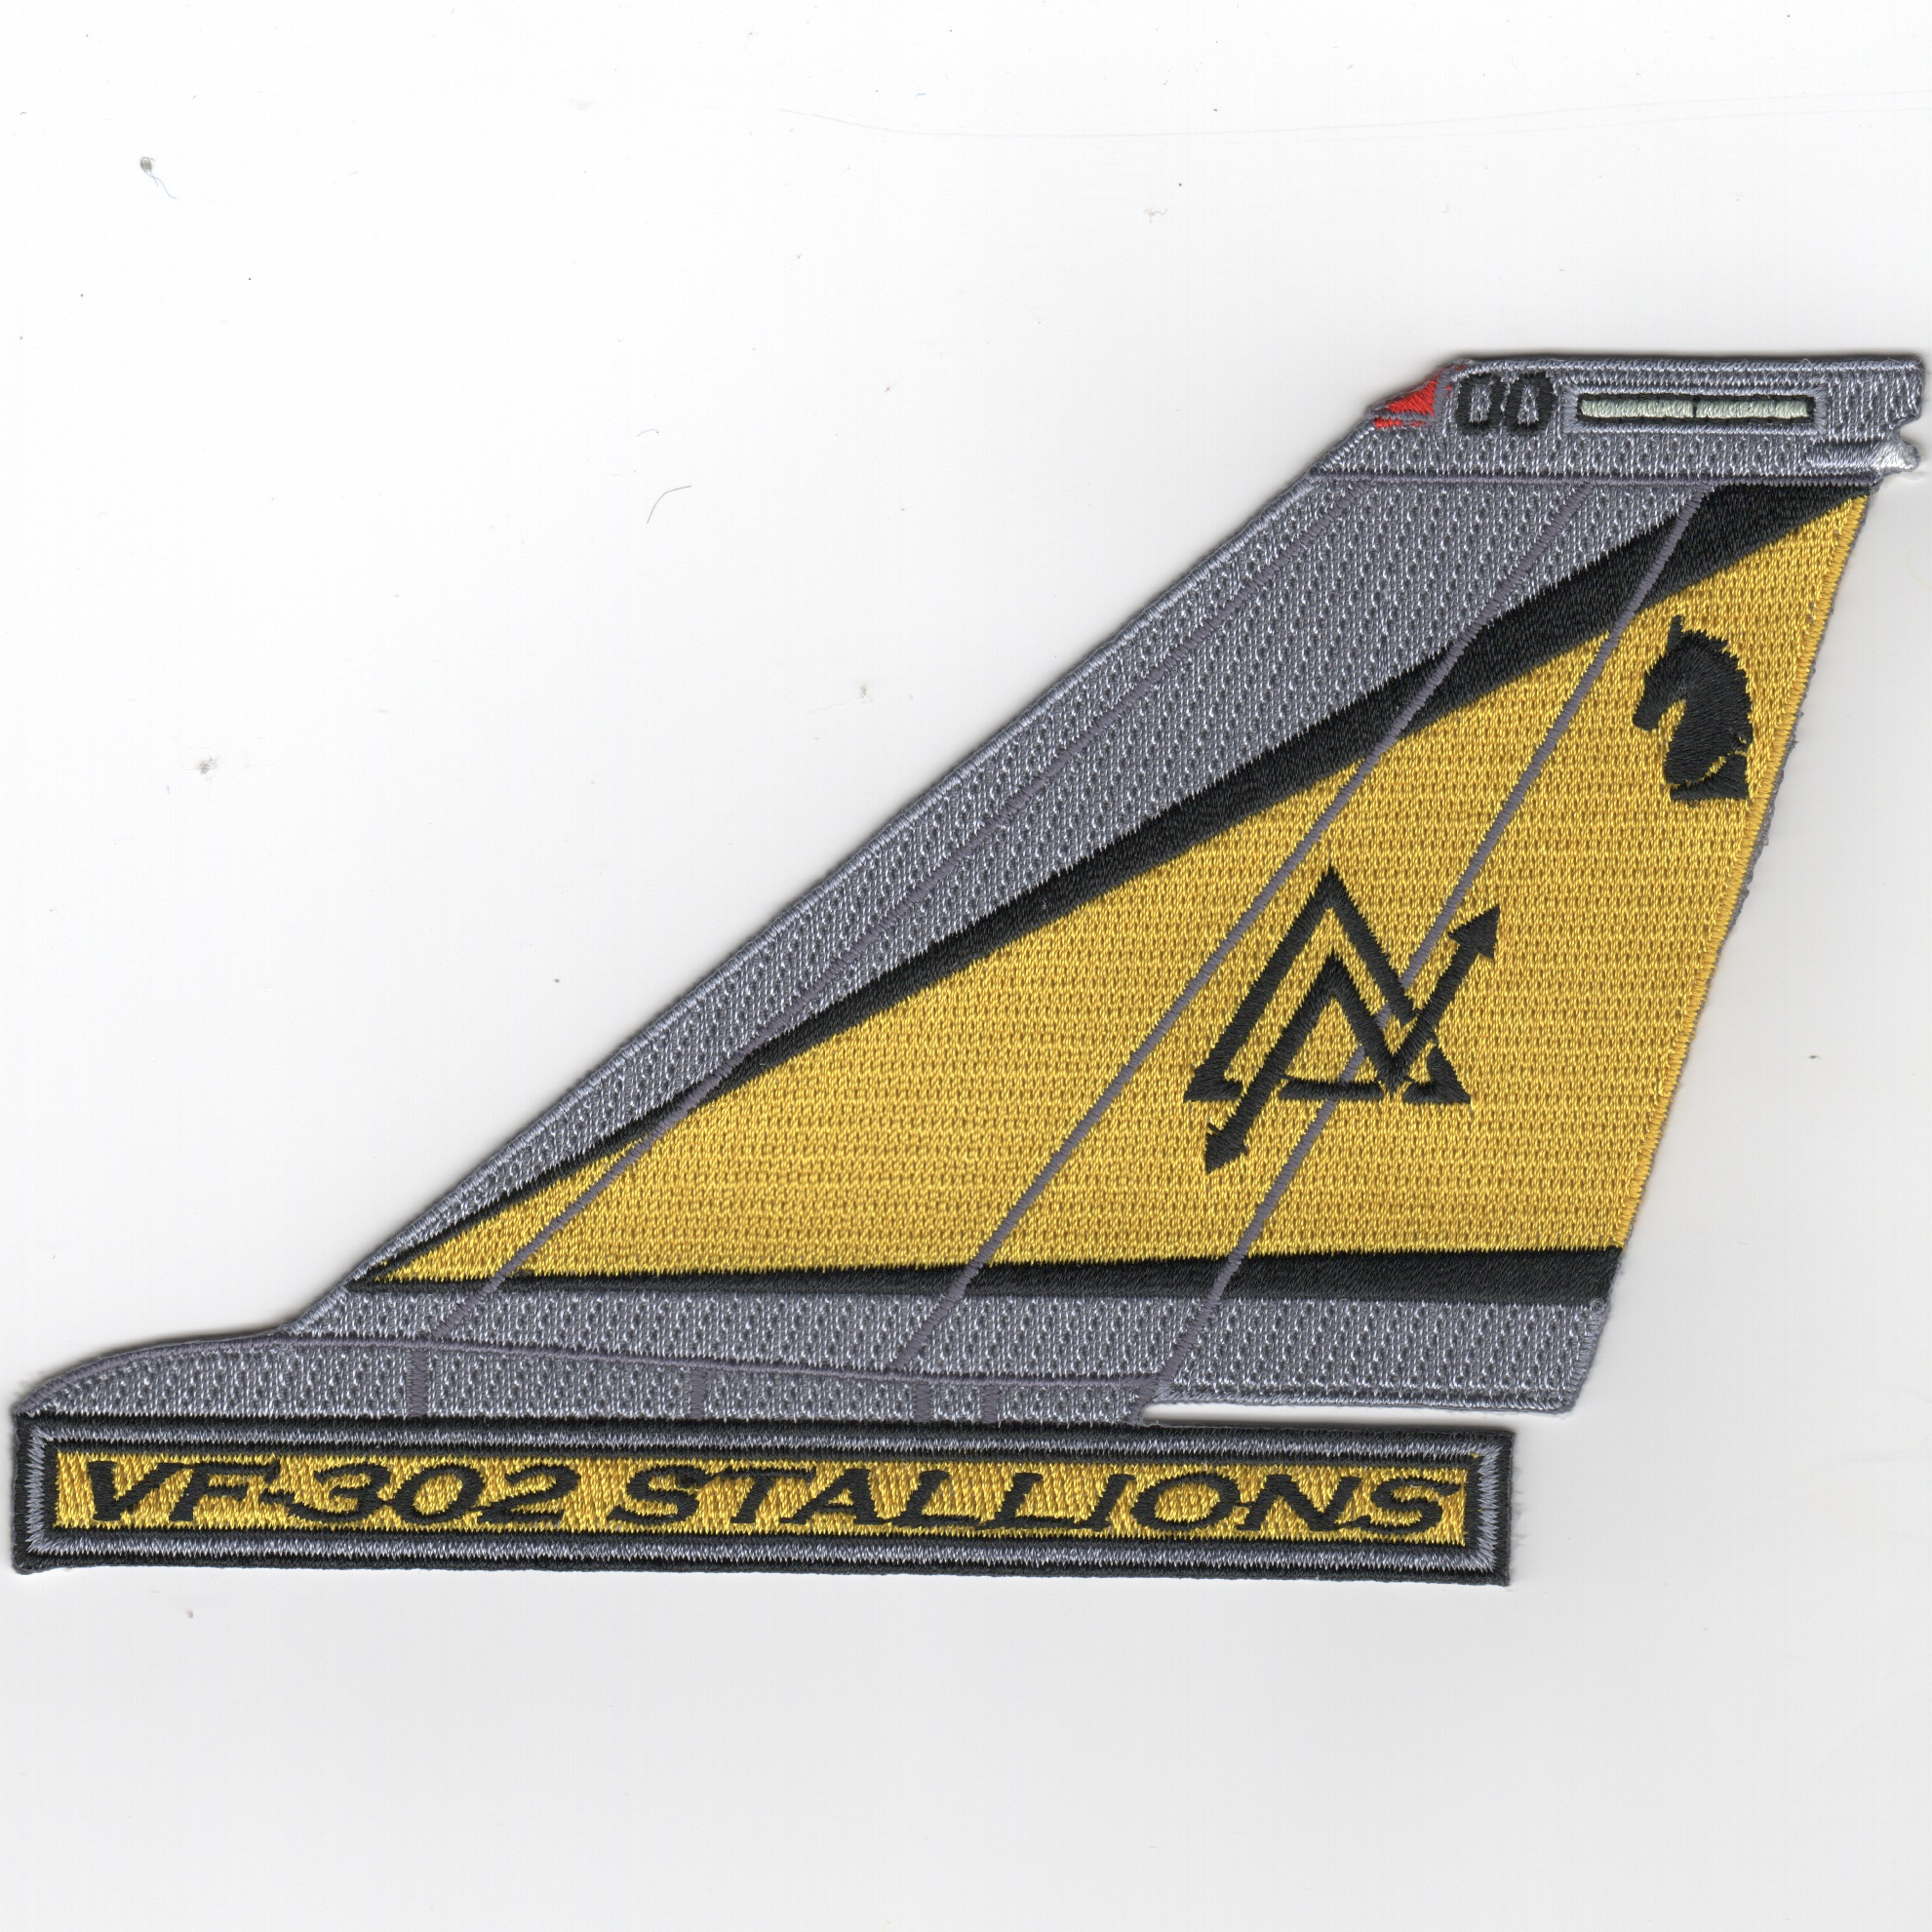 VF-302 F-14 Tailfin (Text)